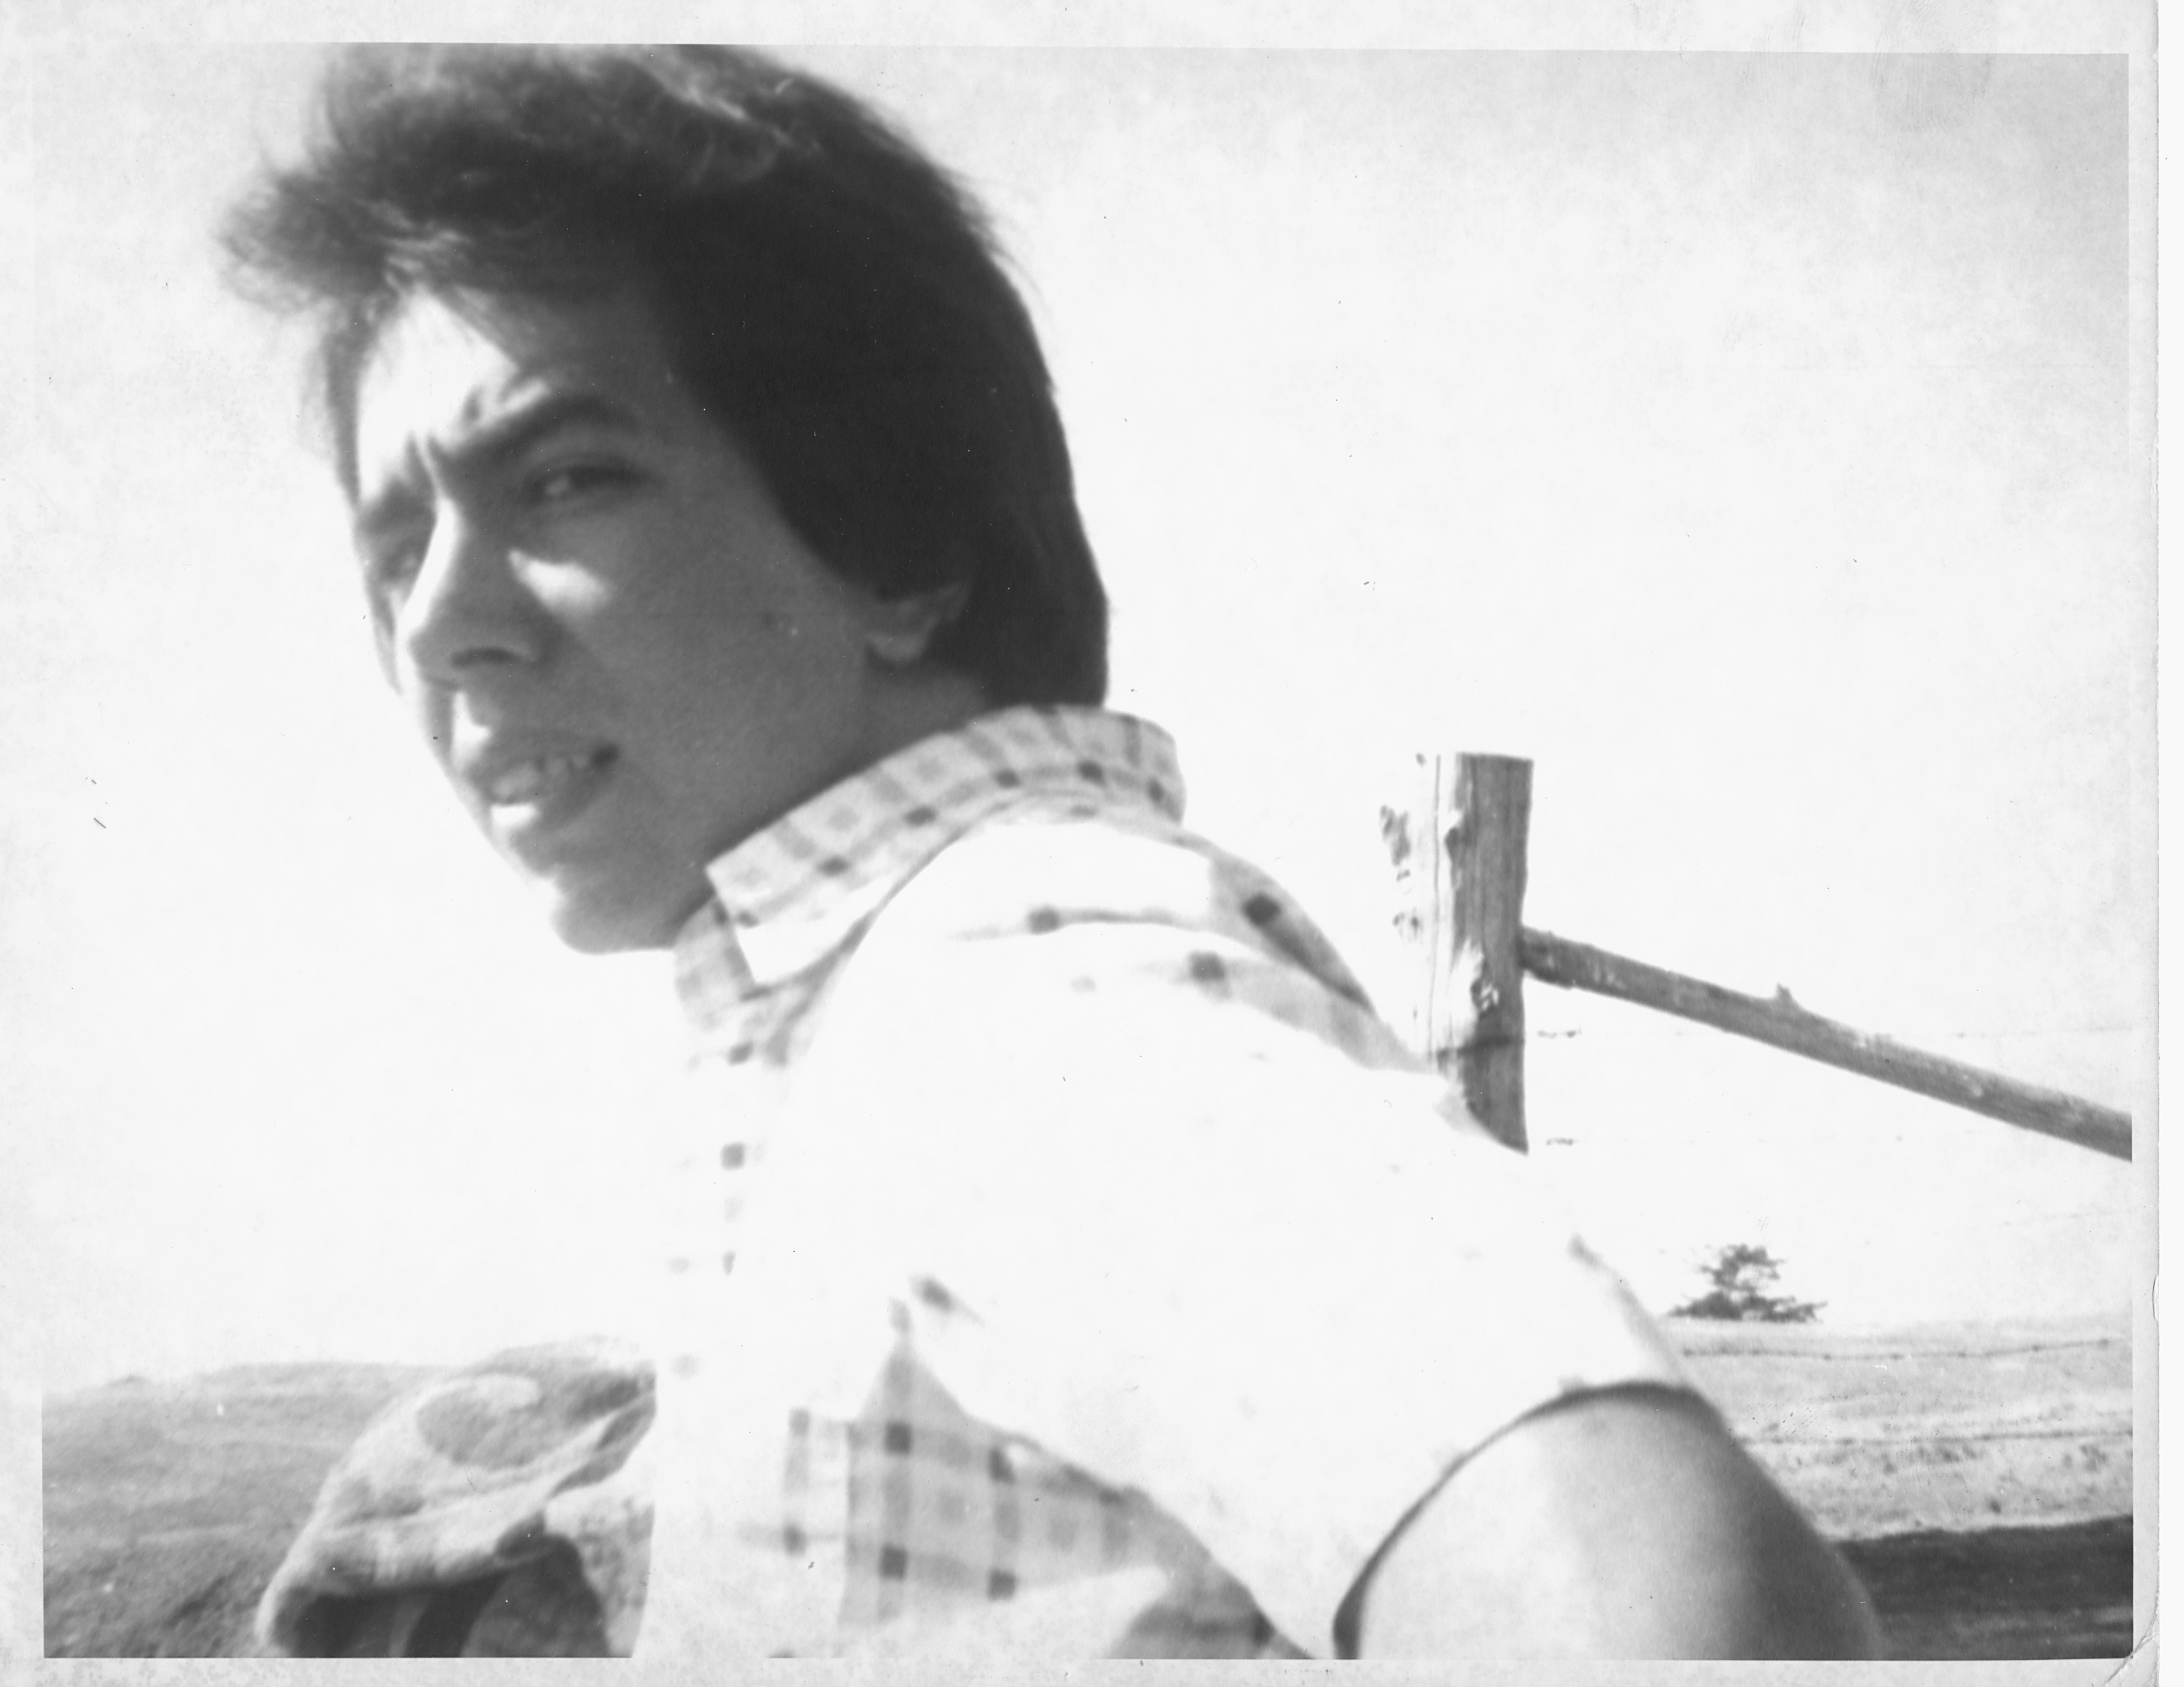 man with dark hair looking back over his shoulder at the camera